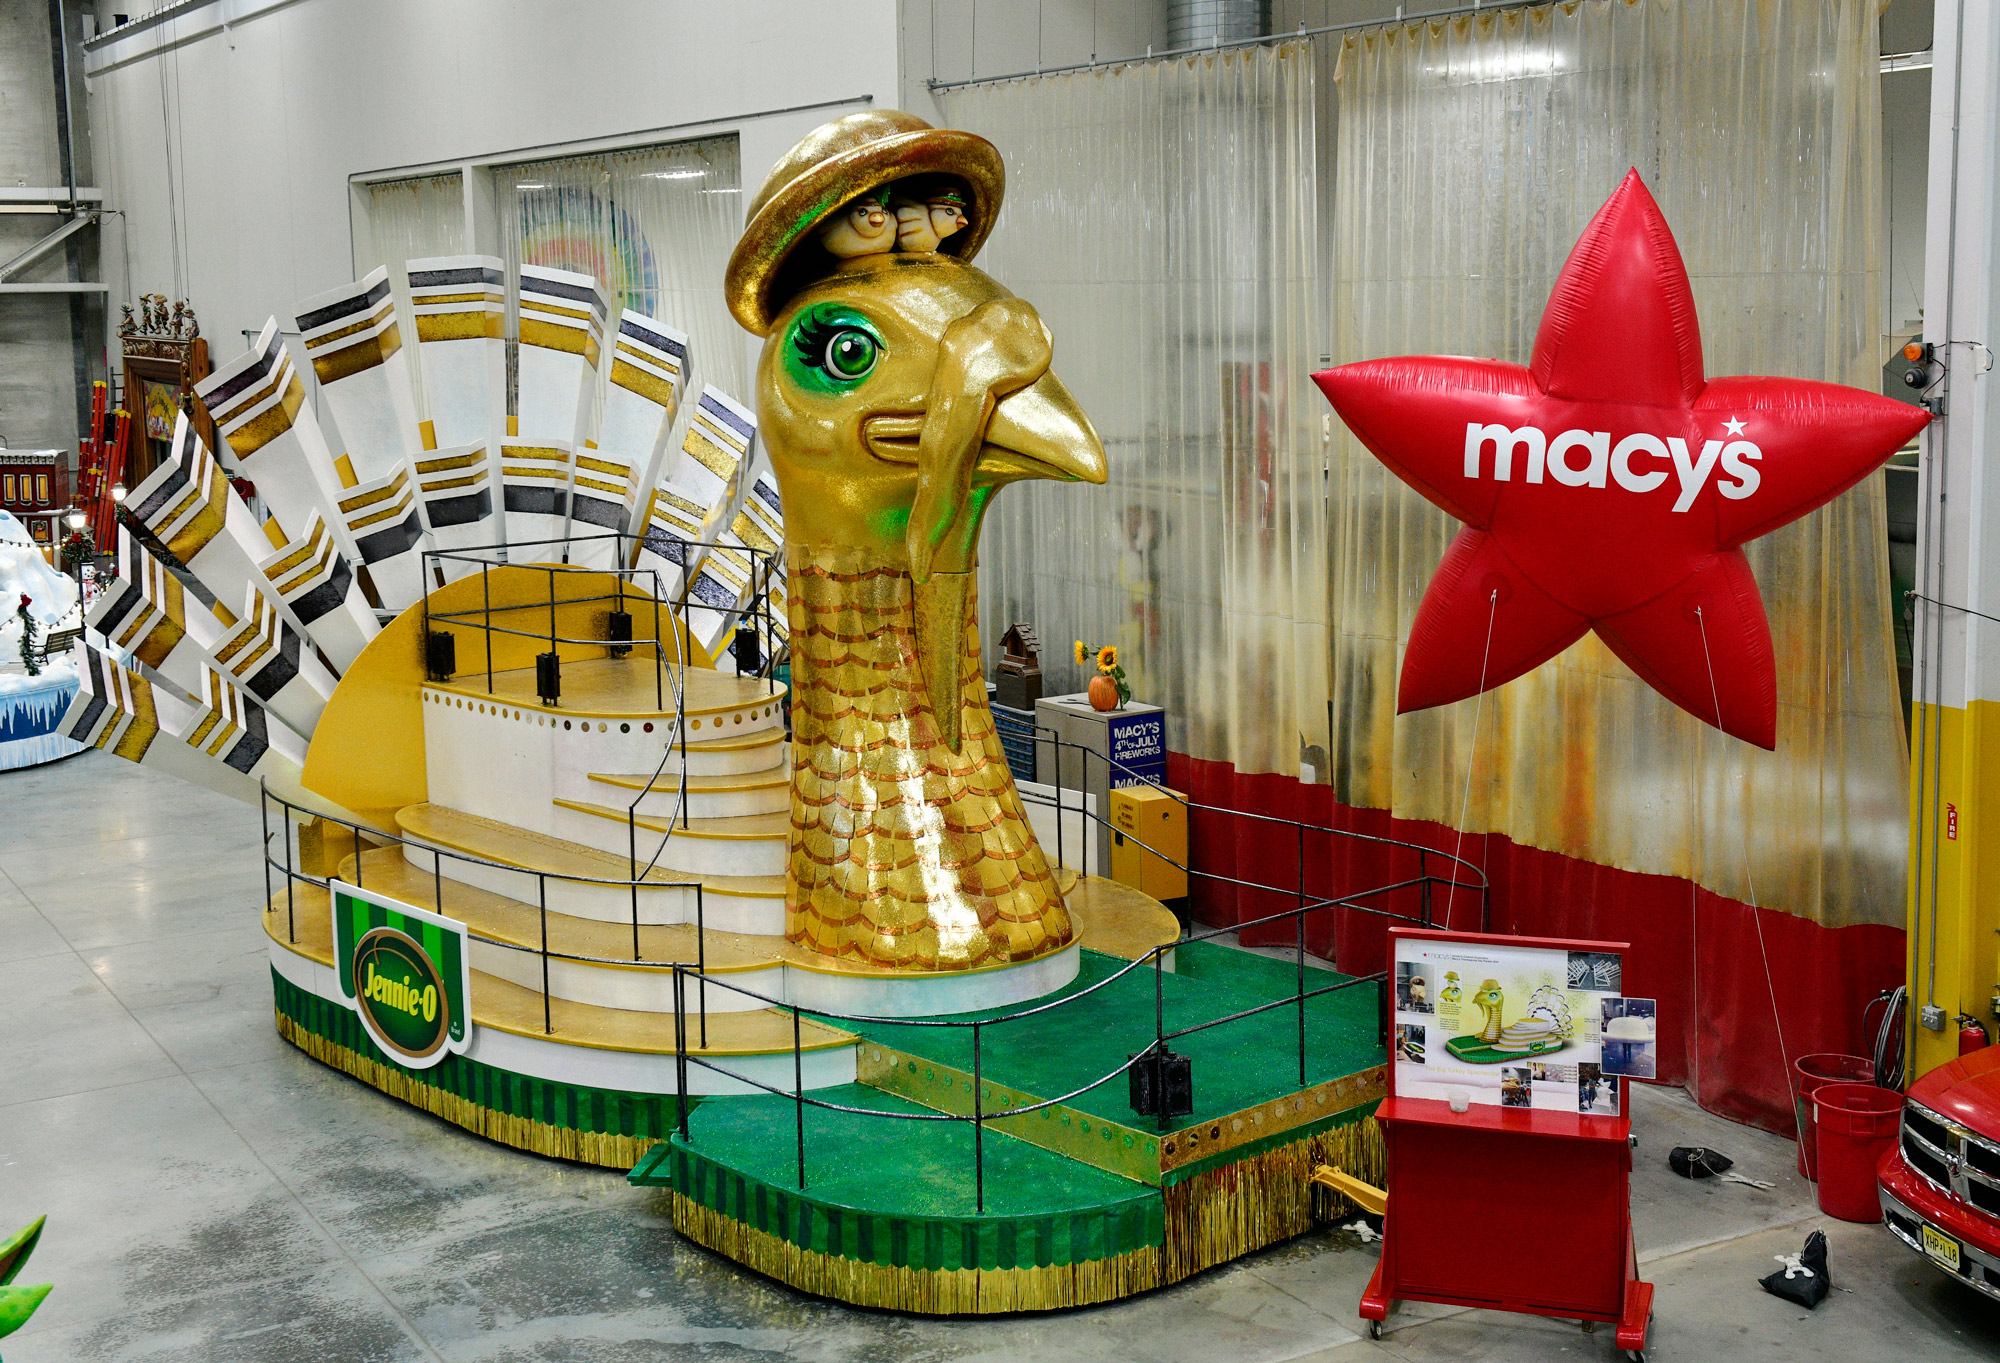 A view of the Jennie-O float as Macy's unveils the new fleet of floats joining the 94th annual Macy's Thanksgiving Day Parade® on November 18 in New York City.